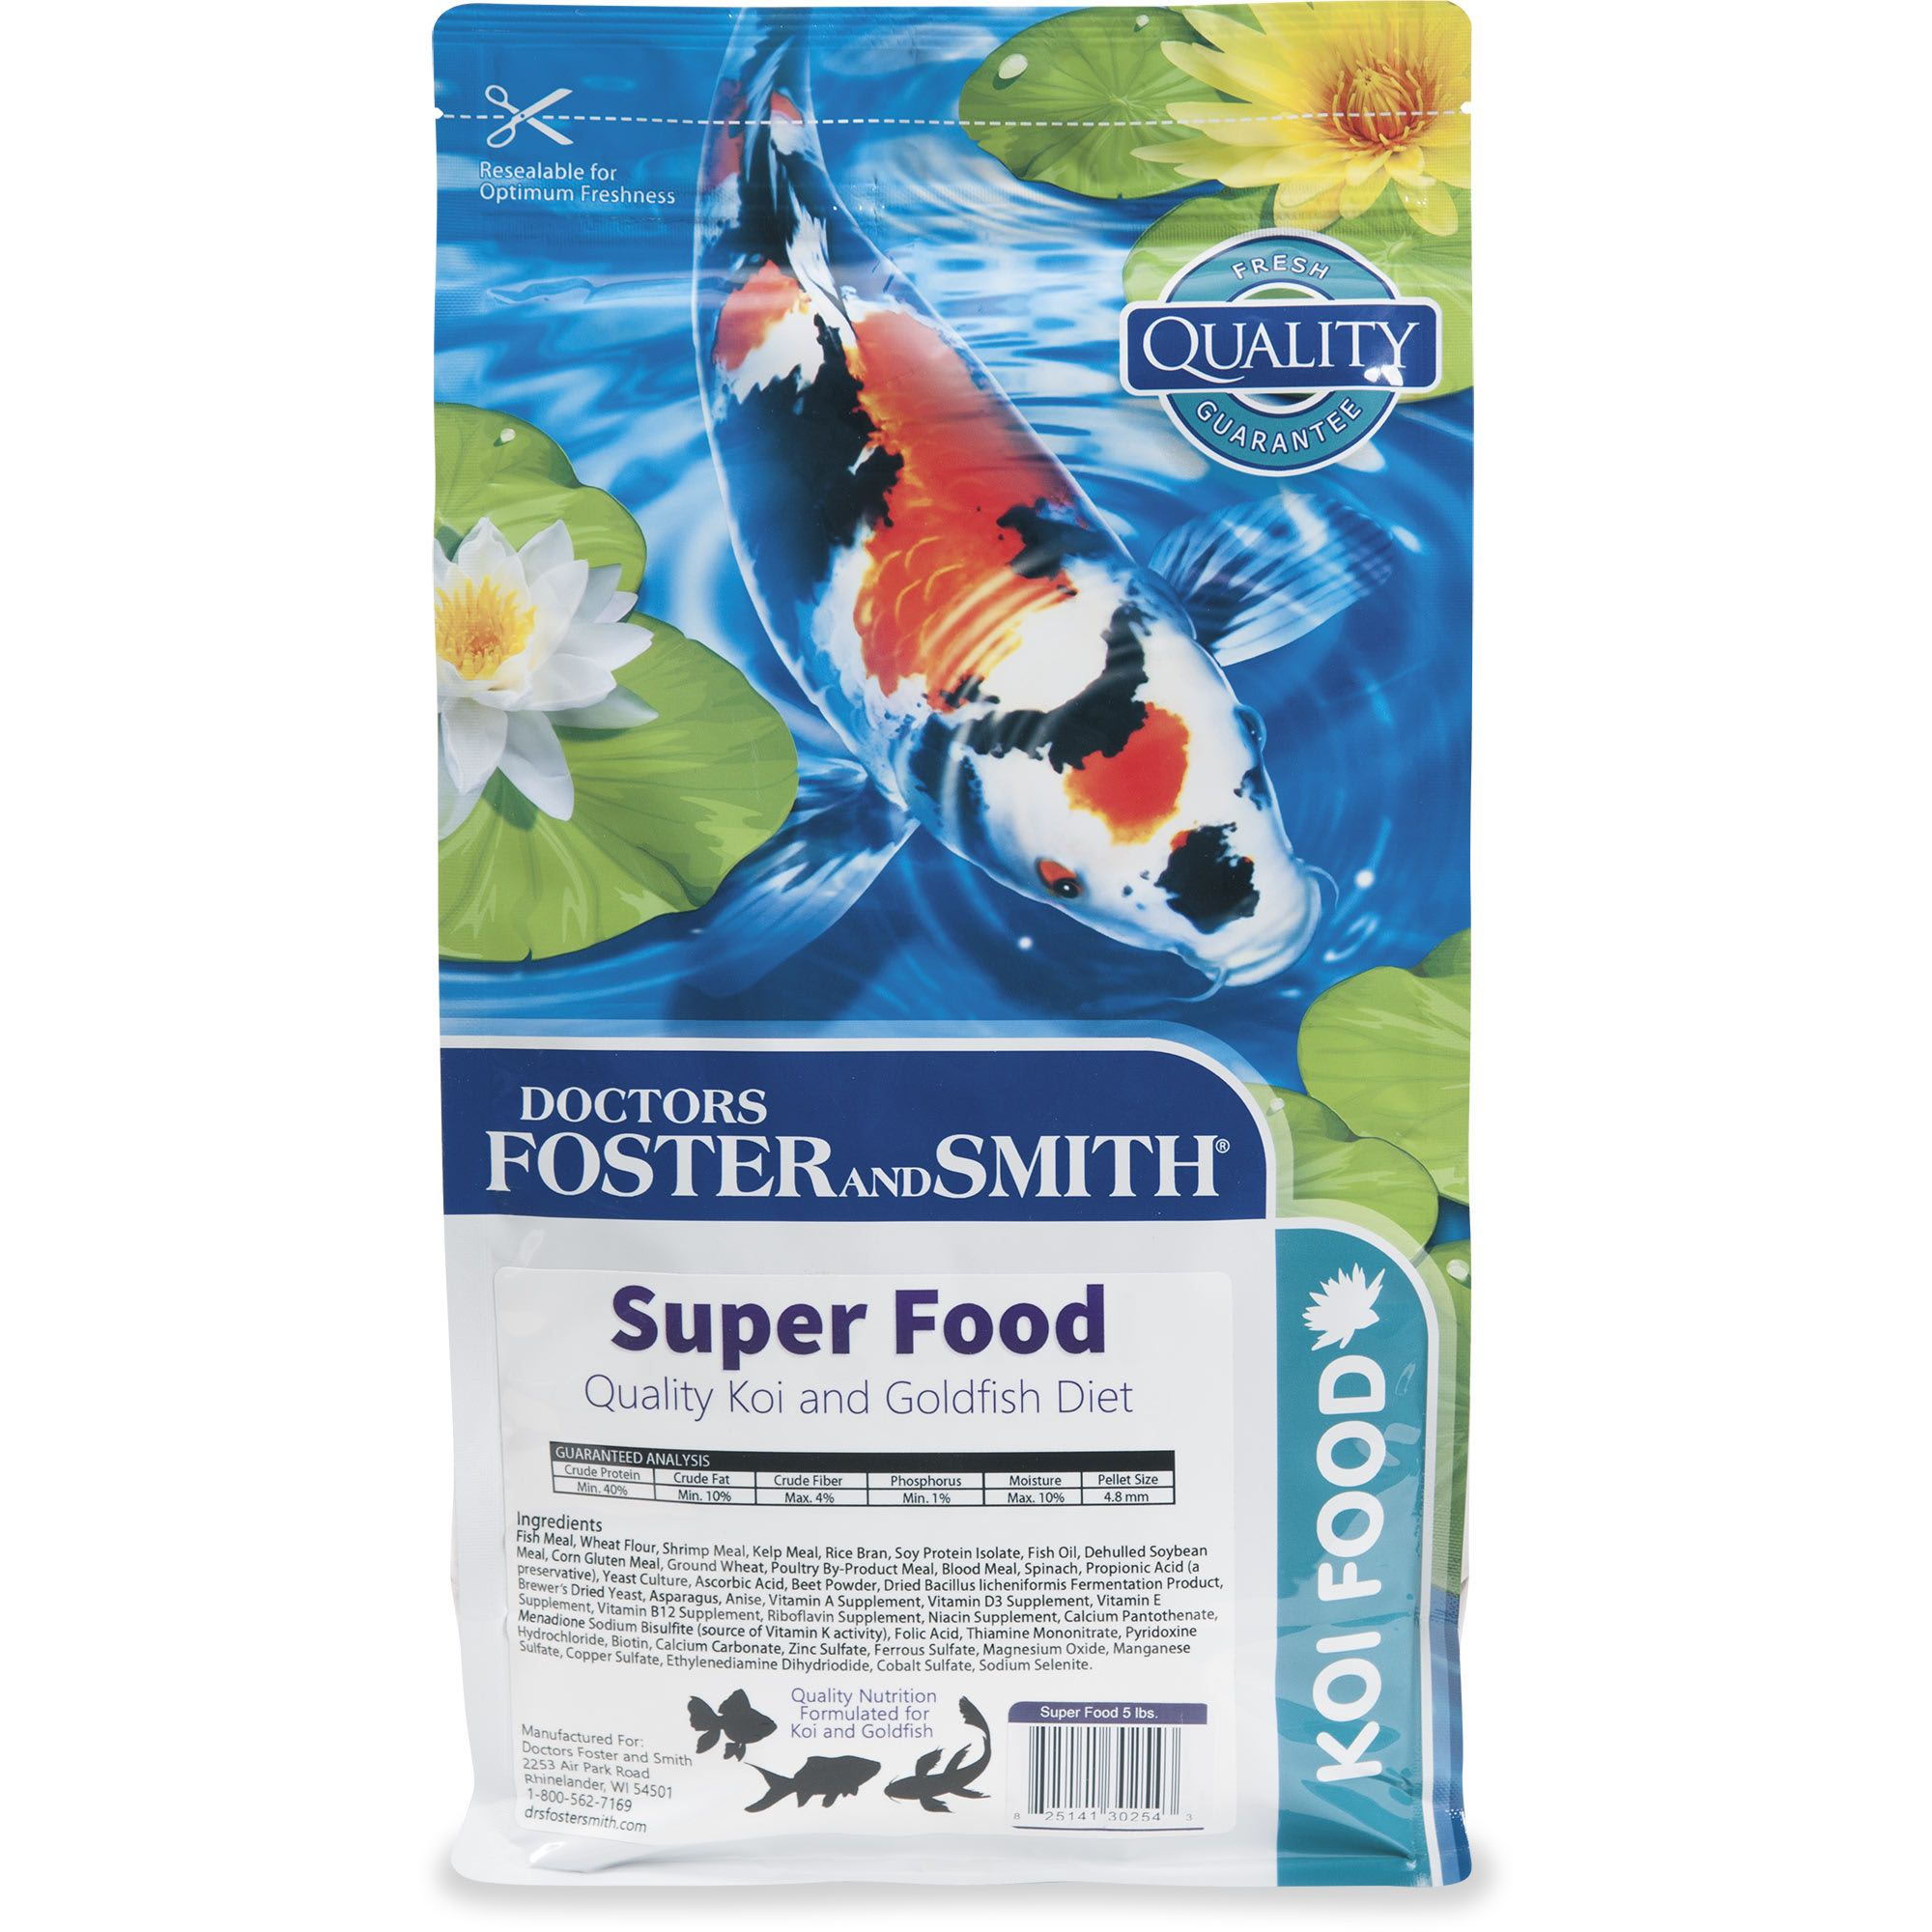 Drs Foster And Smith Super Food Quality Koi And Goldfish Food 5 Lbs Petco In 2020 Goldfish Food Foster And Smith Food Quality